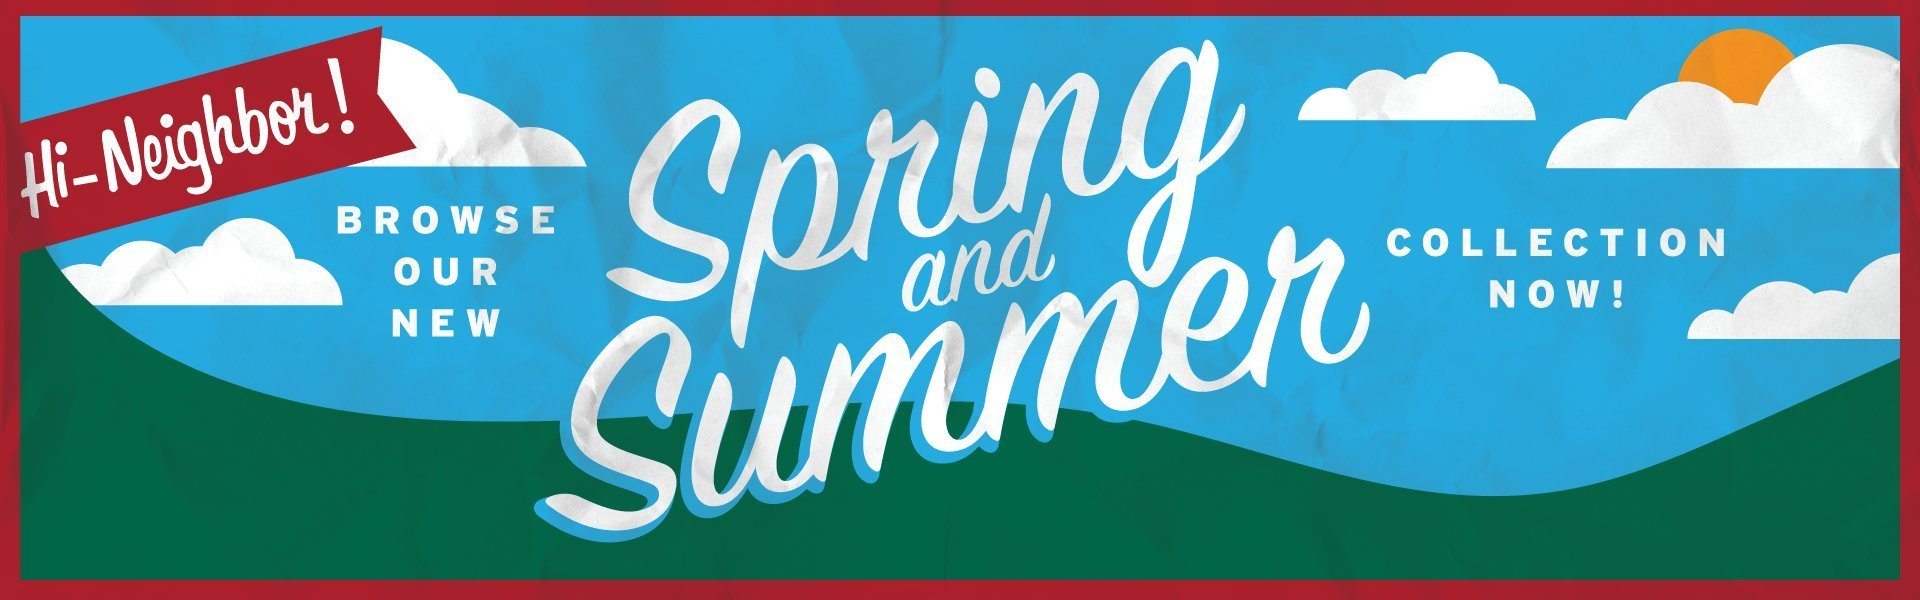 Narragansett Beer's Spring and Summer Store Collection